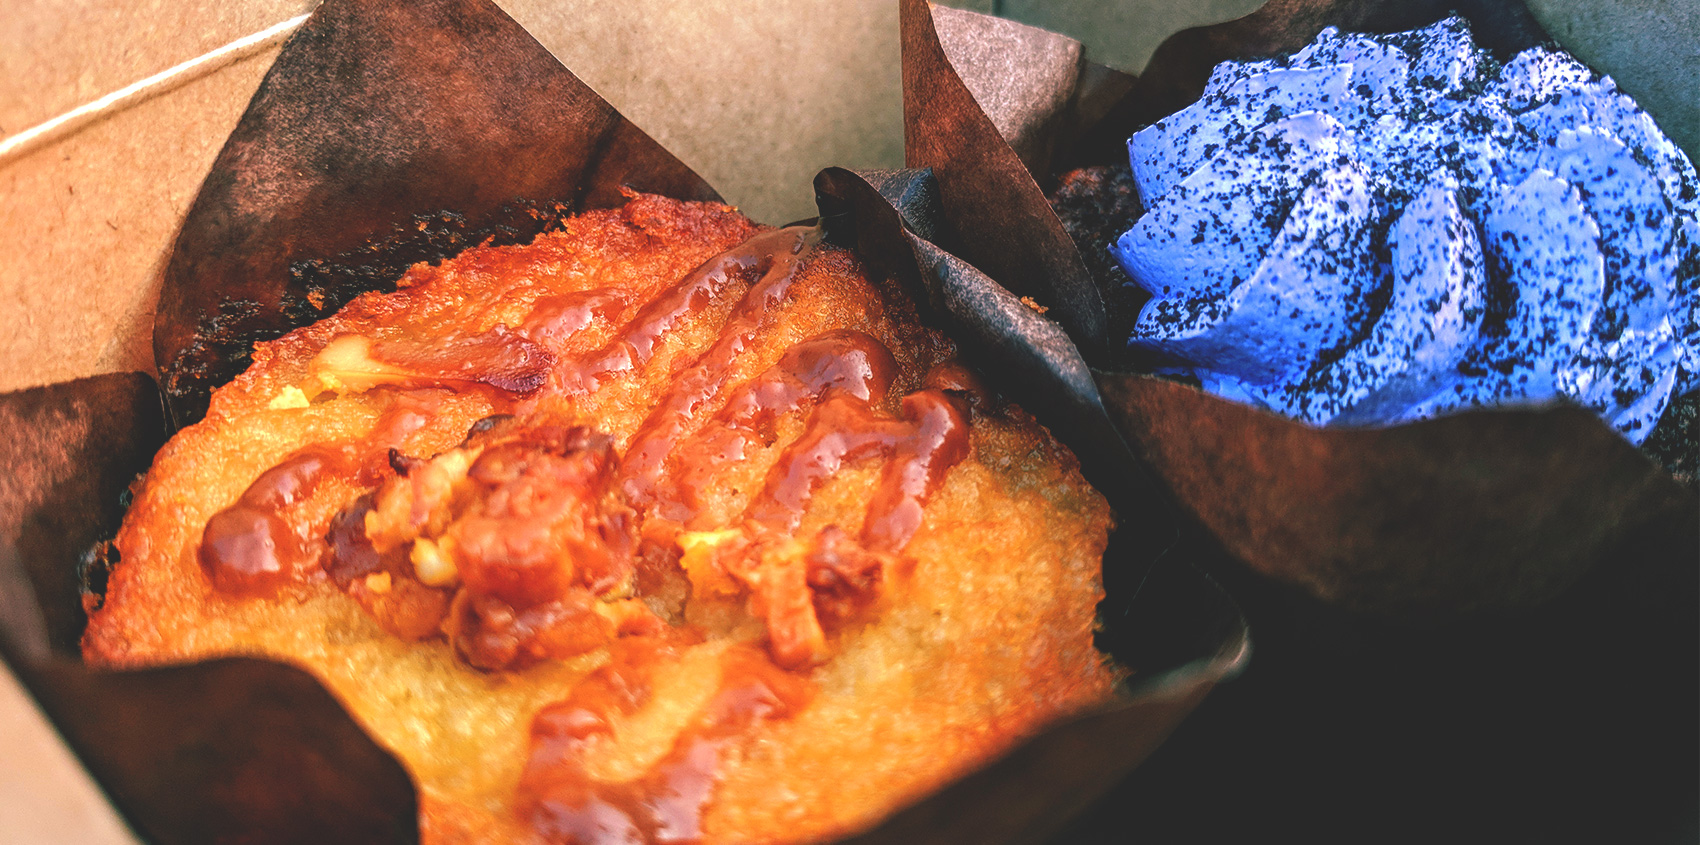 Modern-Day-Couple-NorCal-Night-Market-Bibingka-Bites